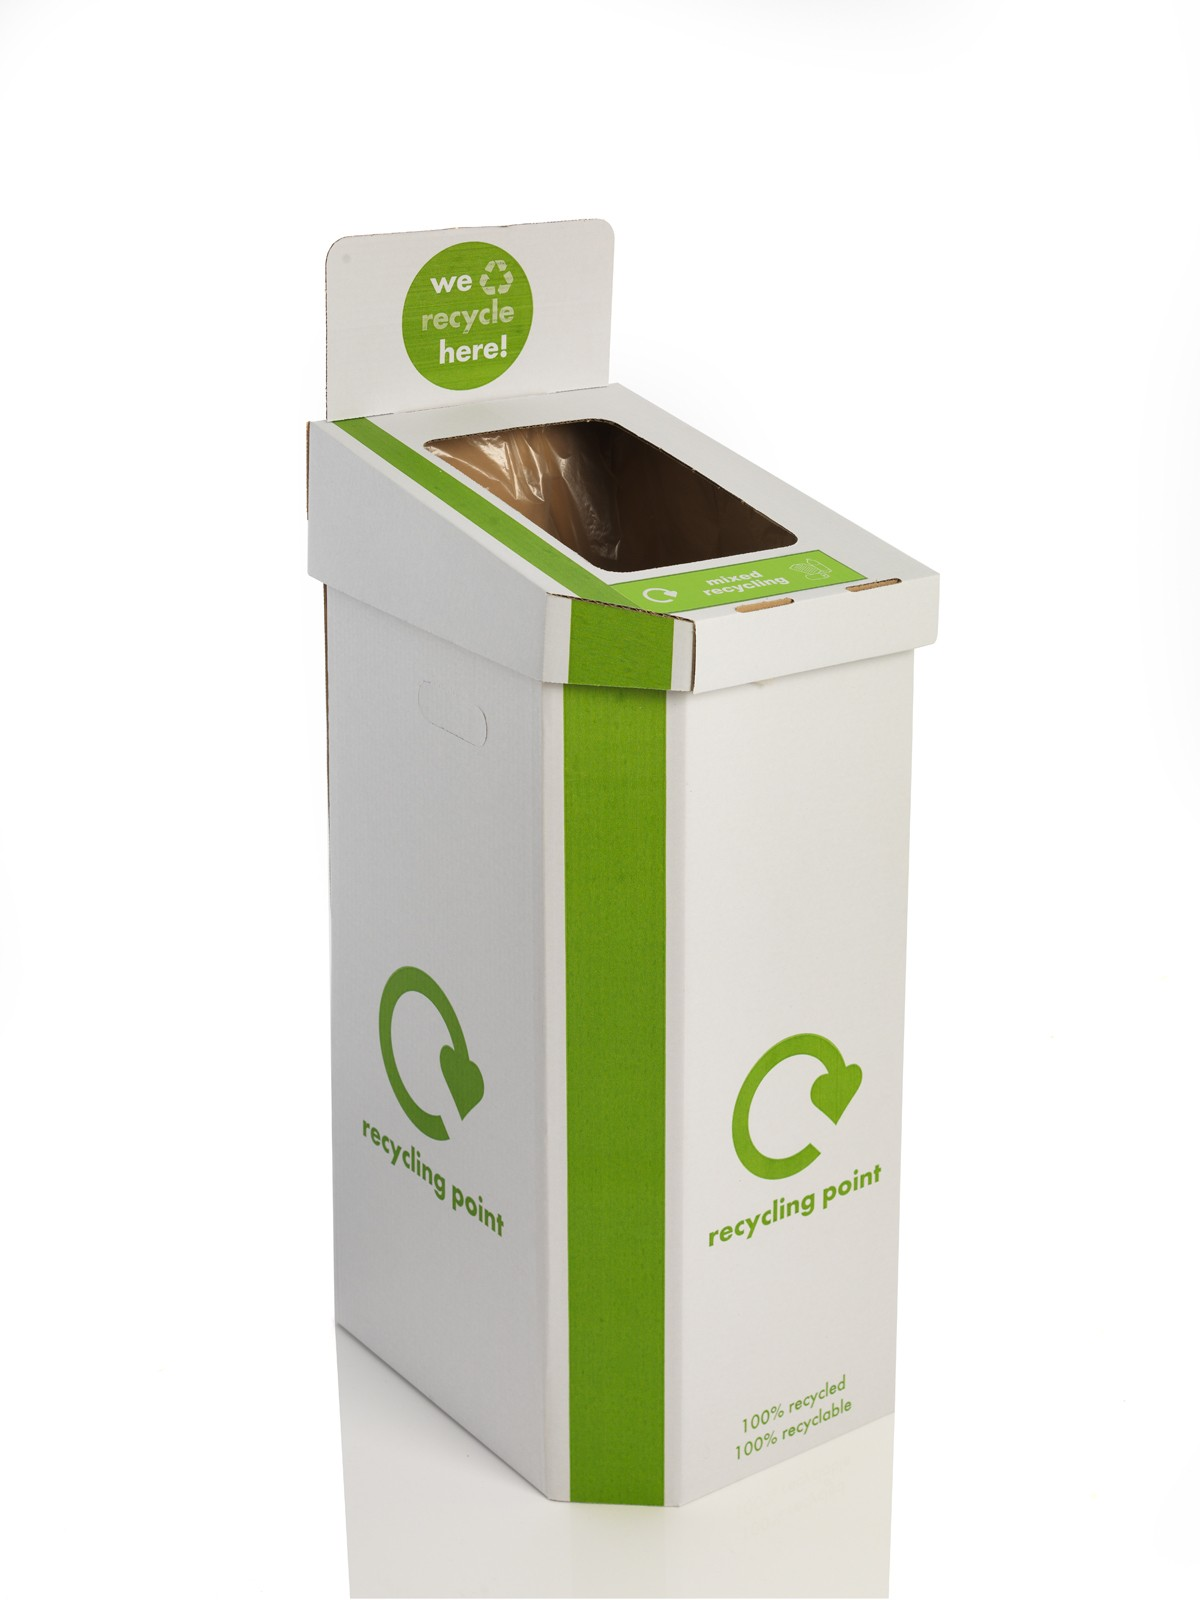 Special Offer Pack Of 5 Cardboard Recycling Bins